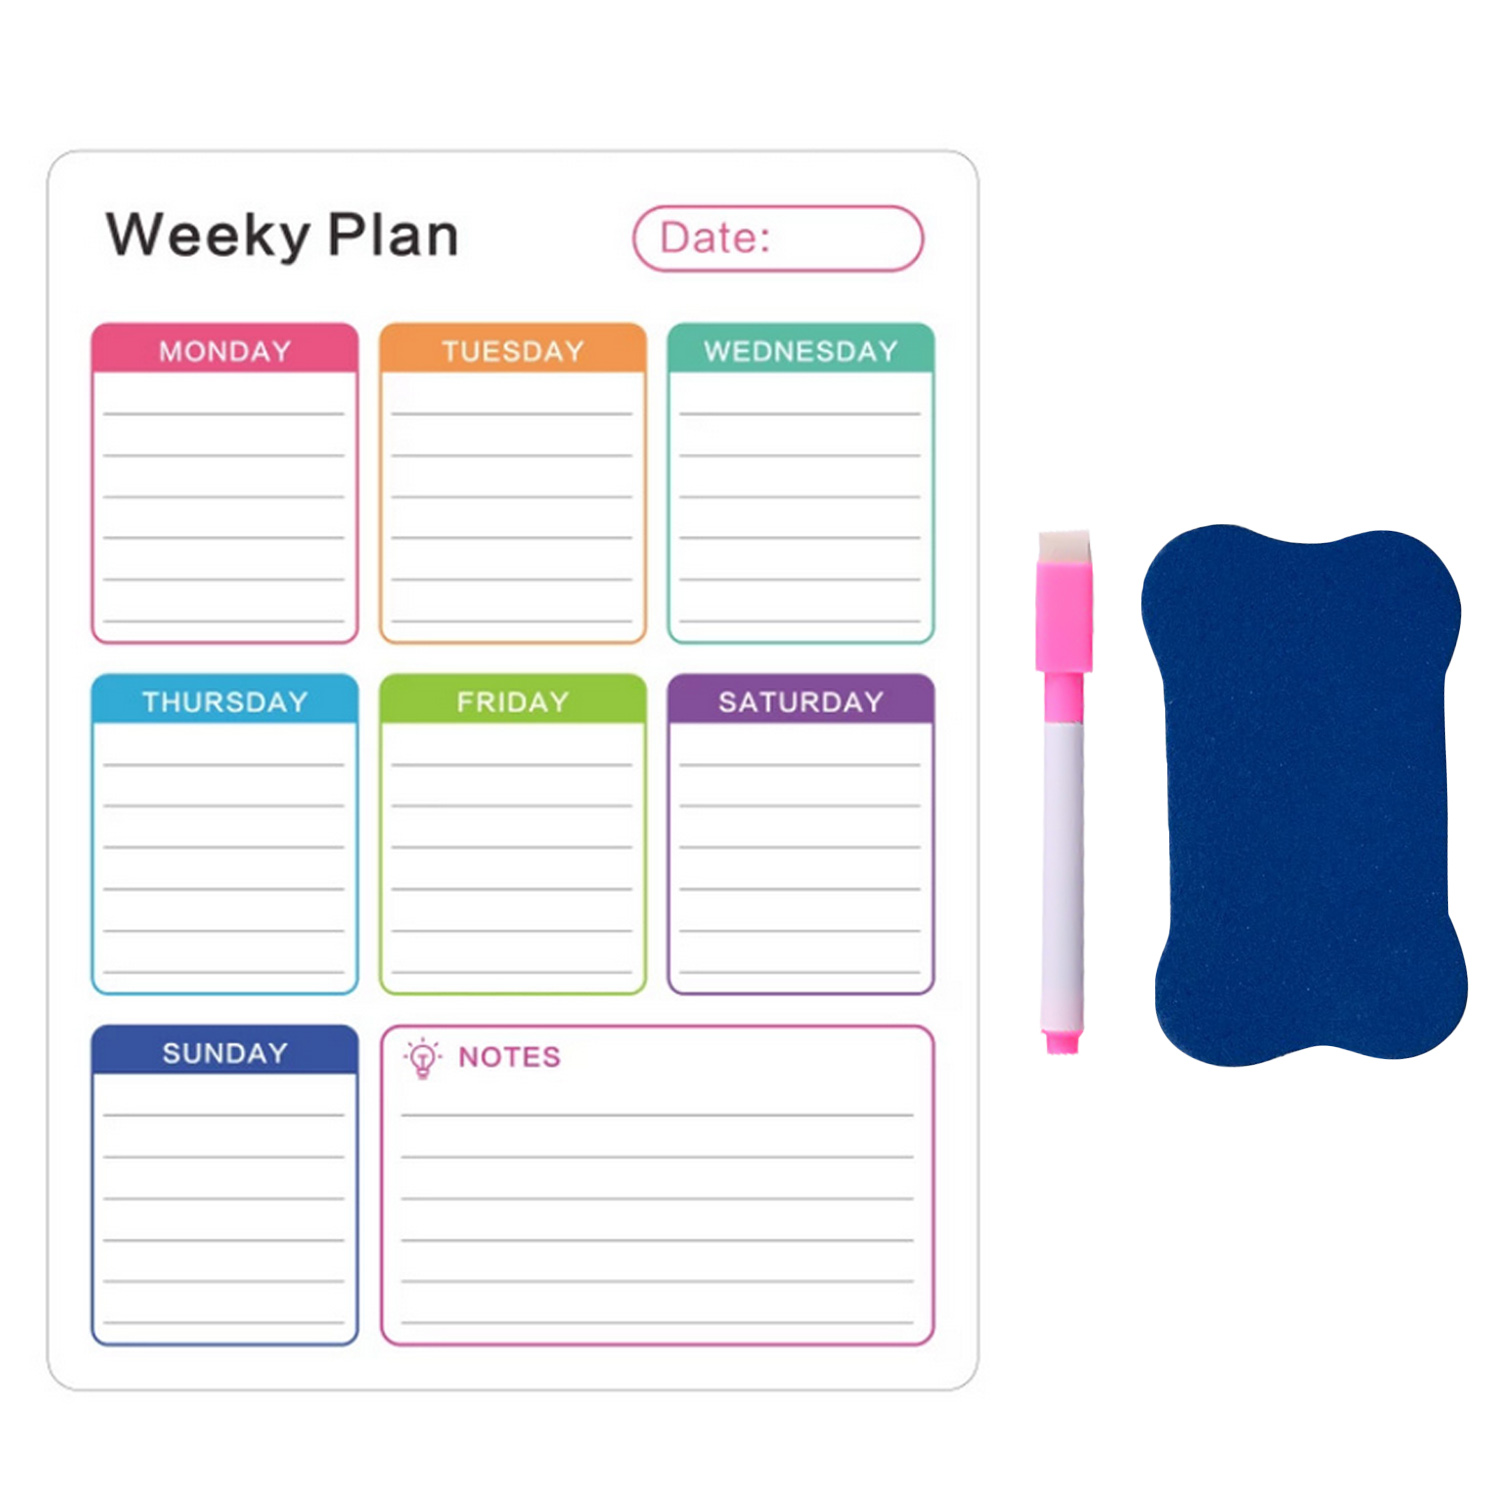 Magnetic Weekly Planner Dry Erase Calendar Board Refrigerator Magnet With 4 Erase Markers For Home School Office Shops 40 X 30cm